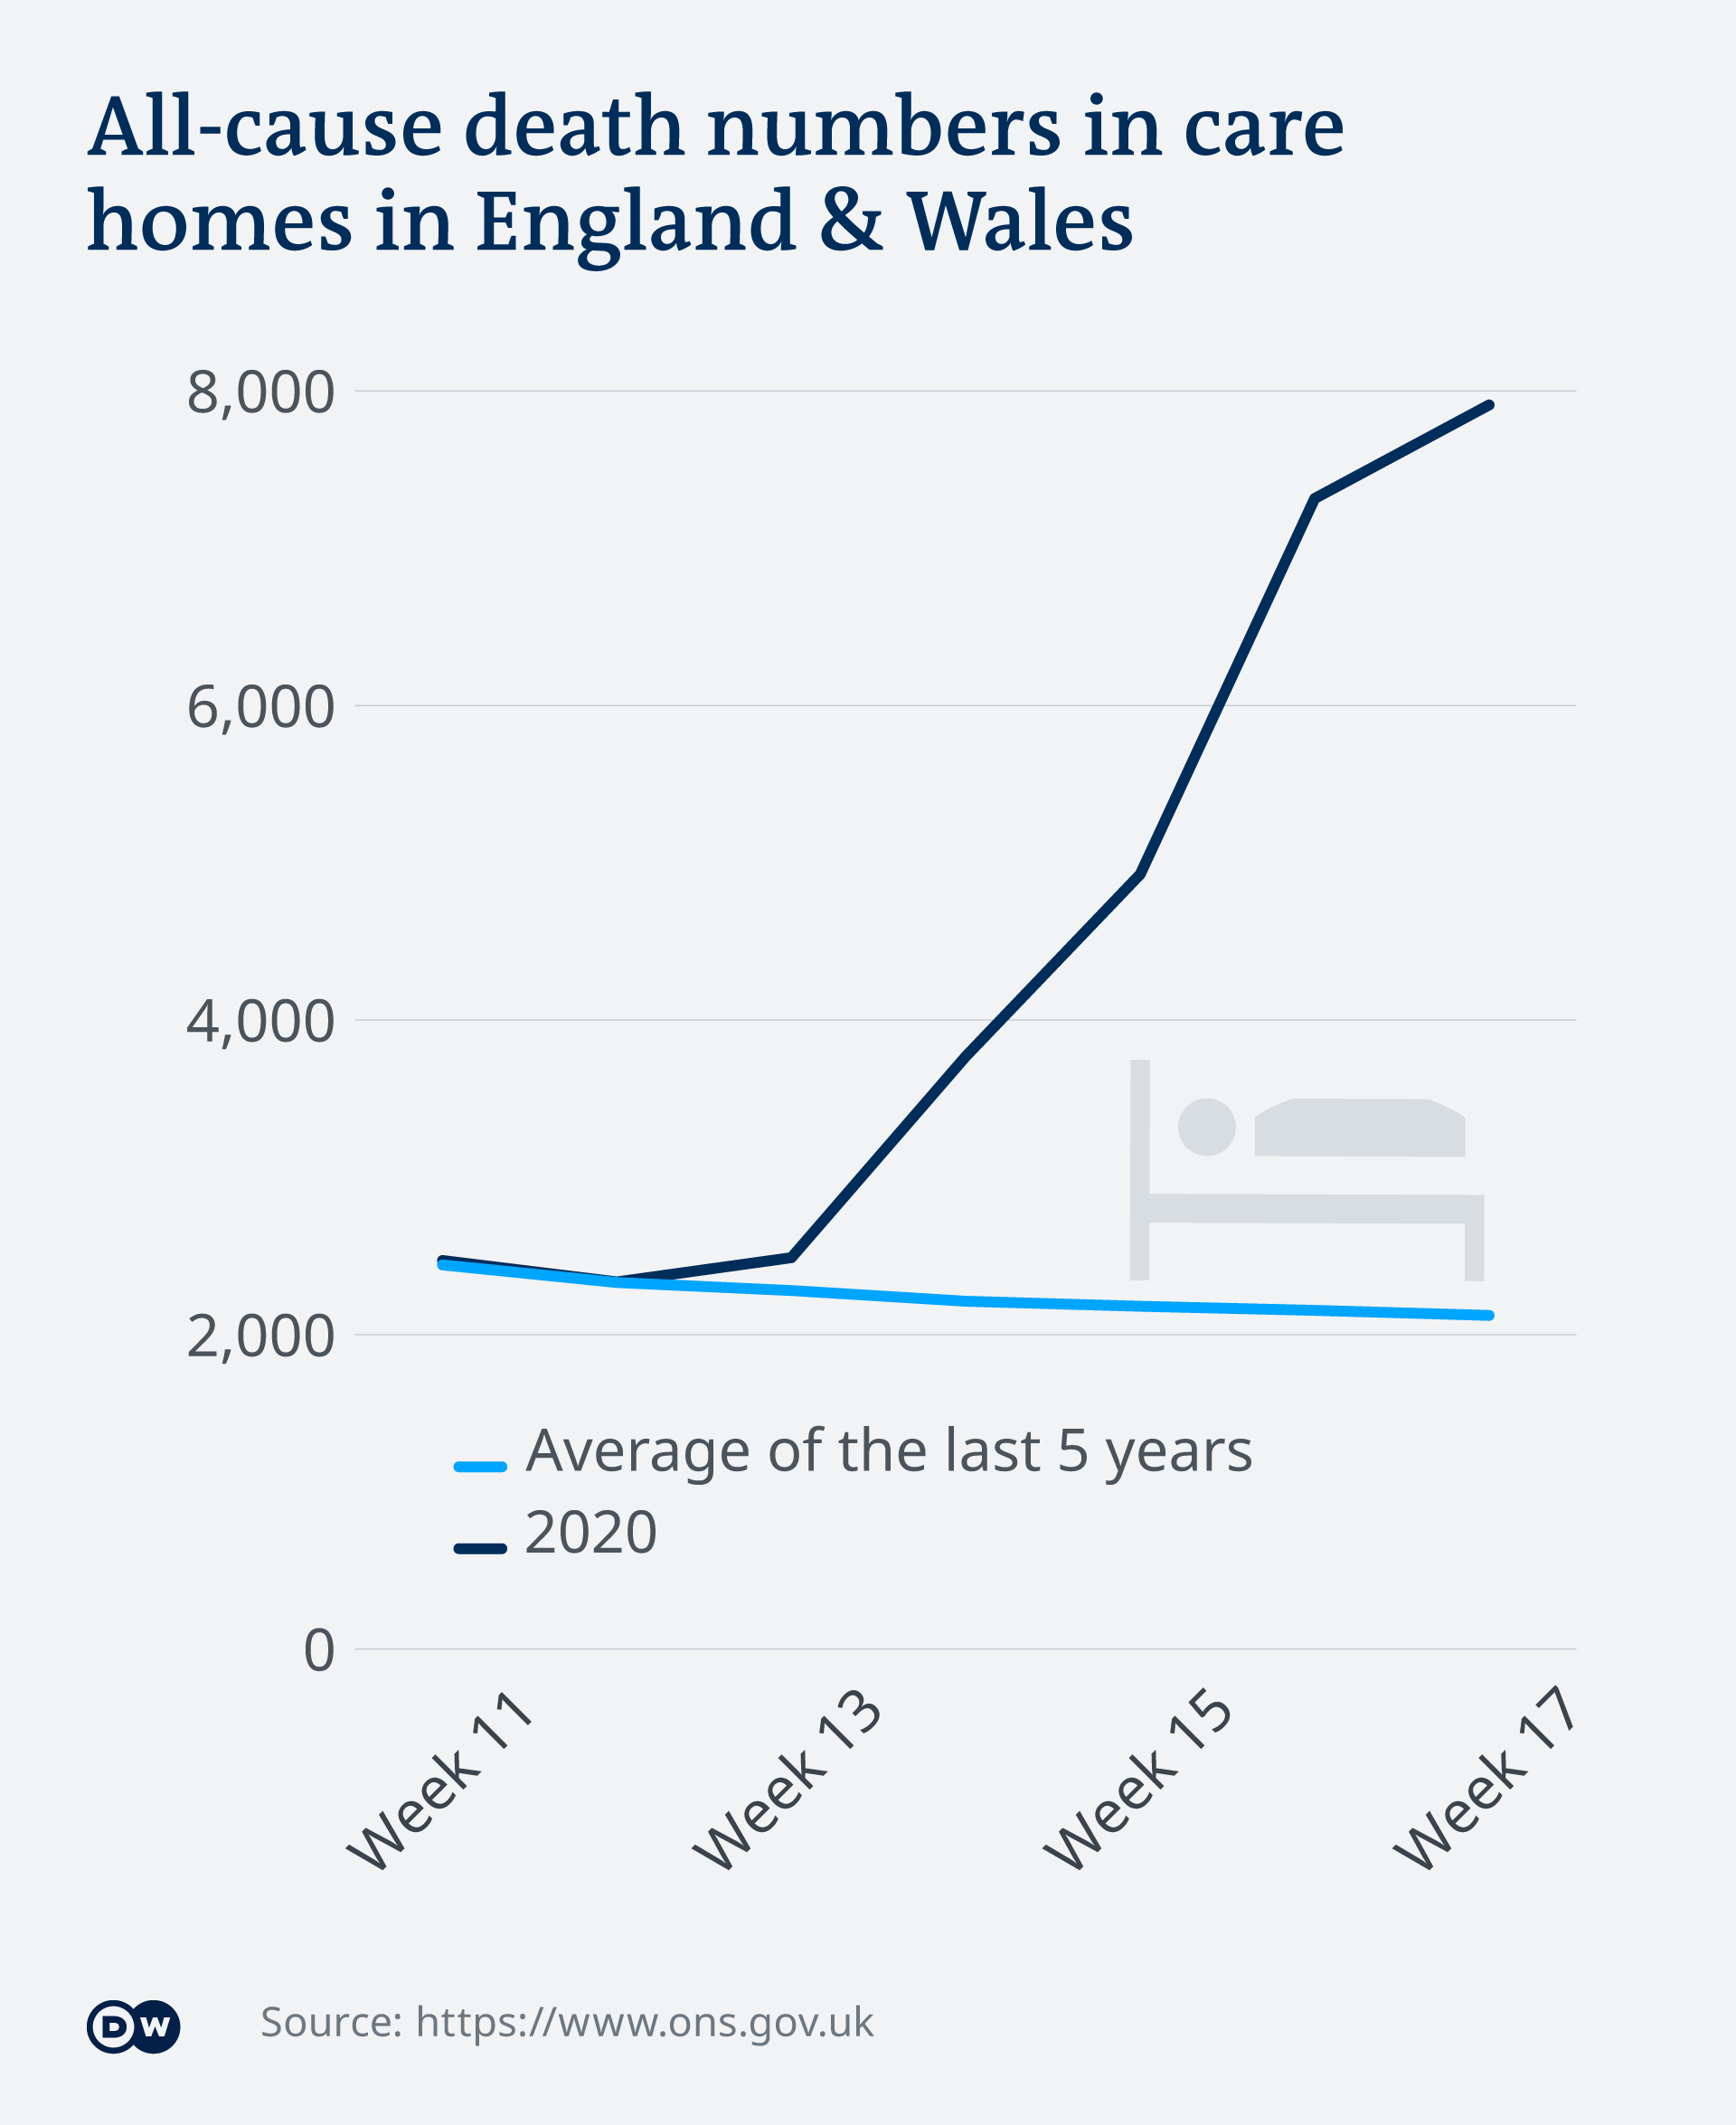 Graphic comparing all-cause death numbers in care homes in England and Wales